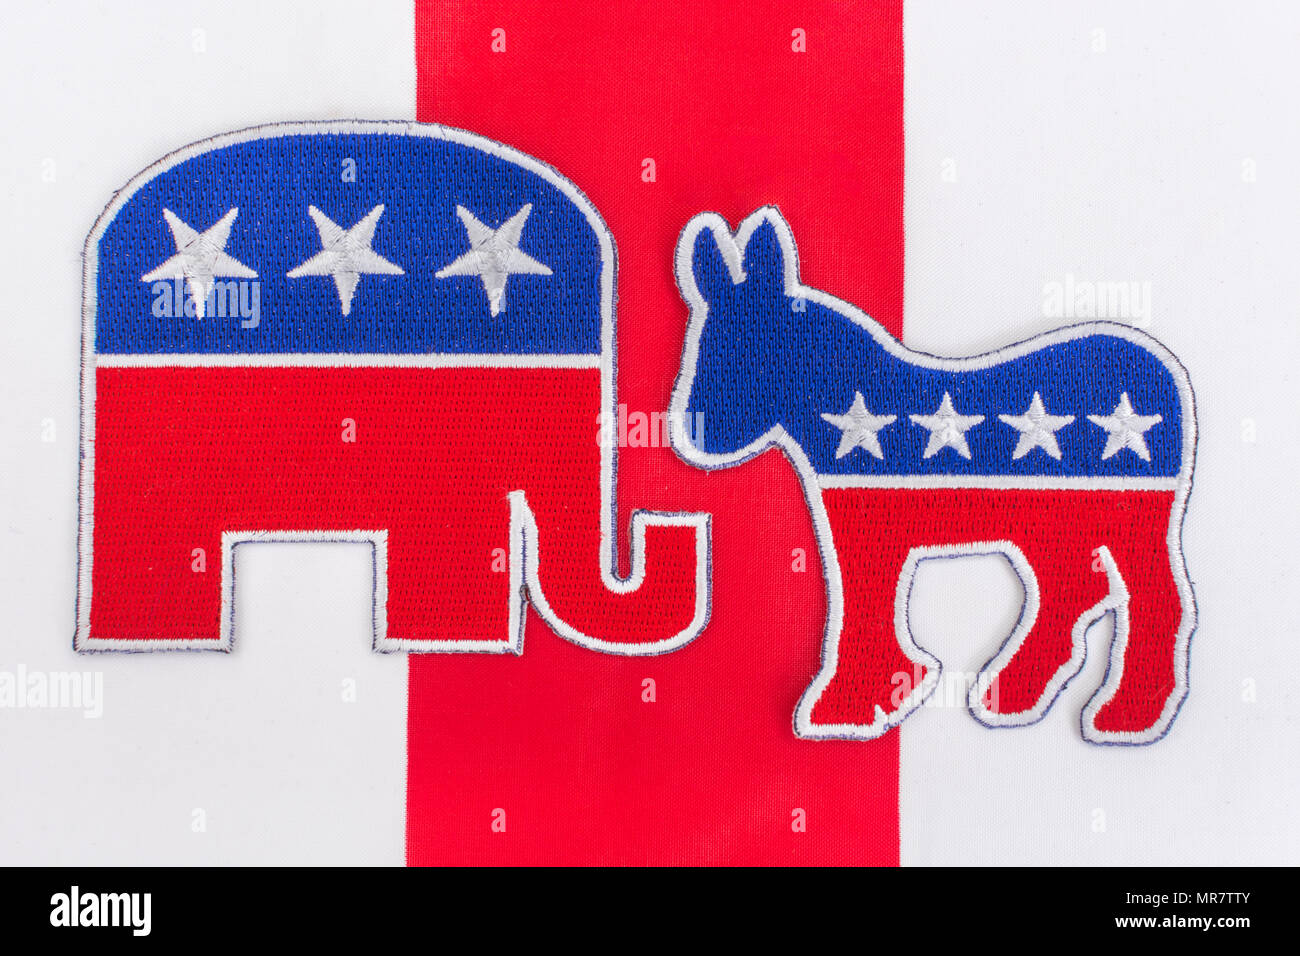 US Democrat Donkey logo & Republican elephant logo on Stars and Stripes - metaphor for 2018 US Midterm election, Midterms, and Presidential elections. - Stock Image